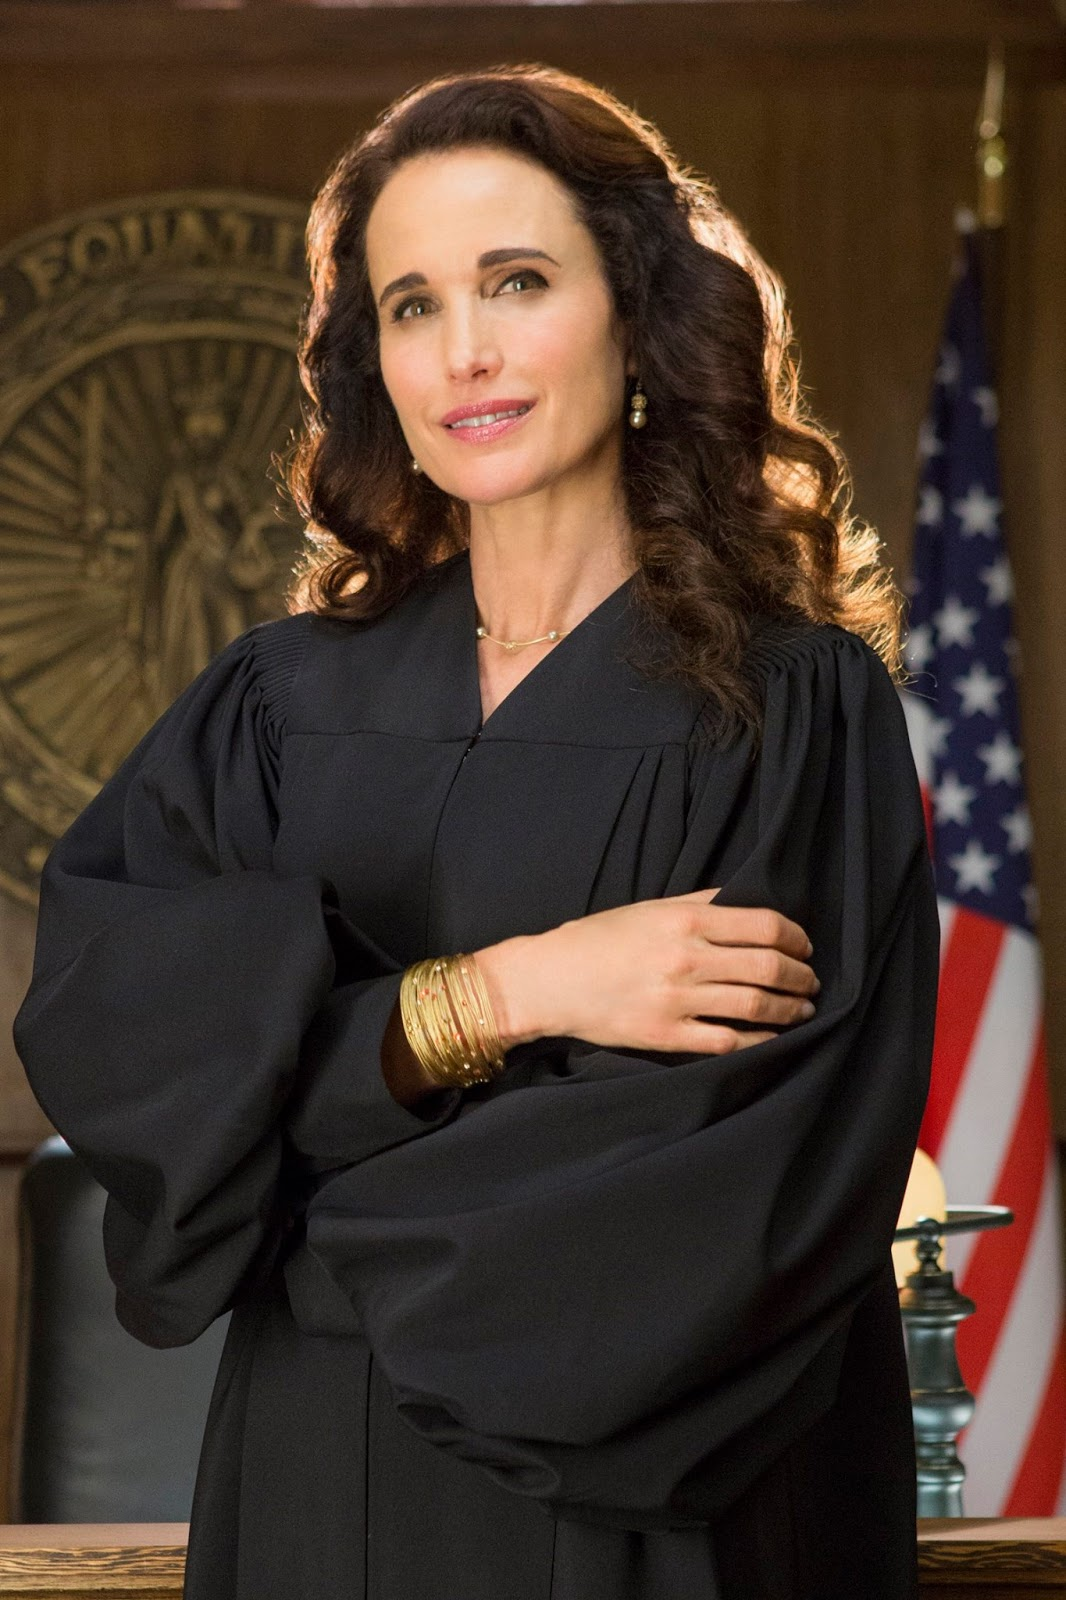 Awesome Quotes Wallpapers Free Download Andie Macdowell Profile Pics Dp Images Whatsapp Images